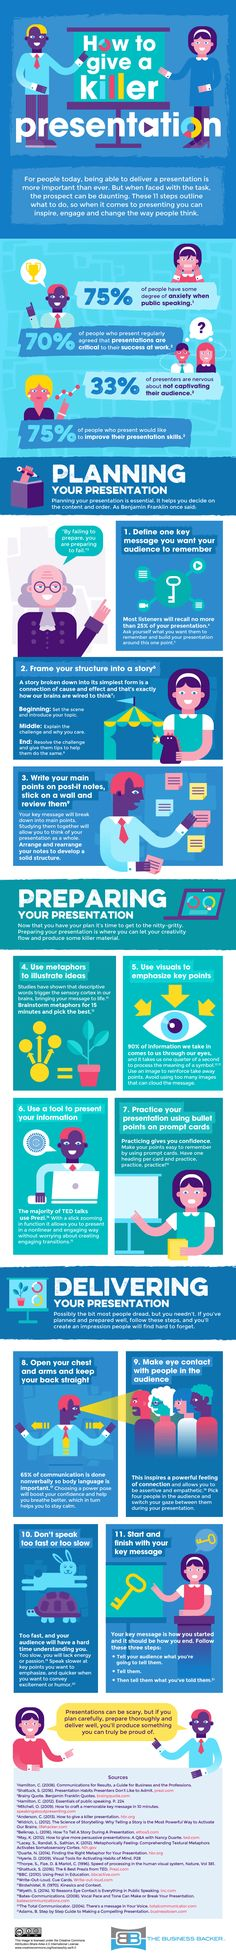 Tipps for a great presentation